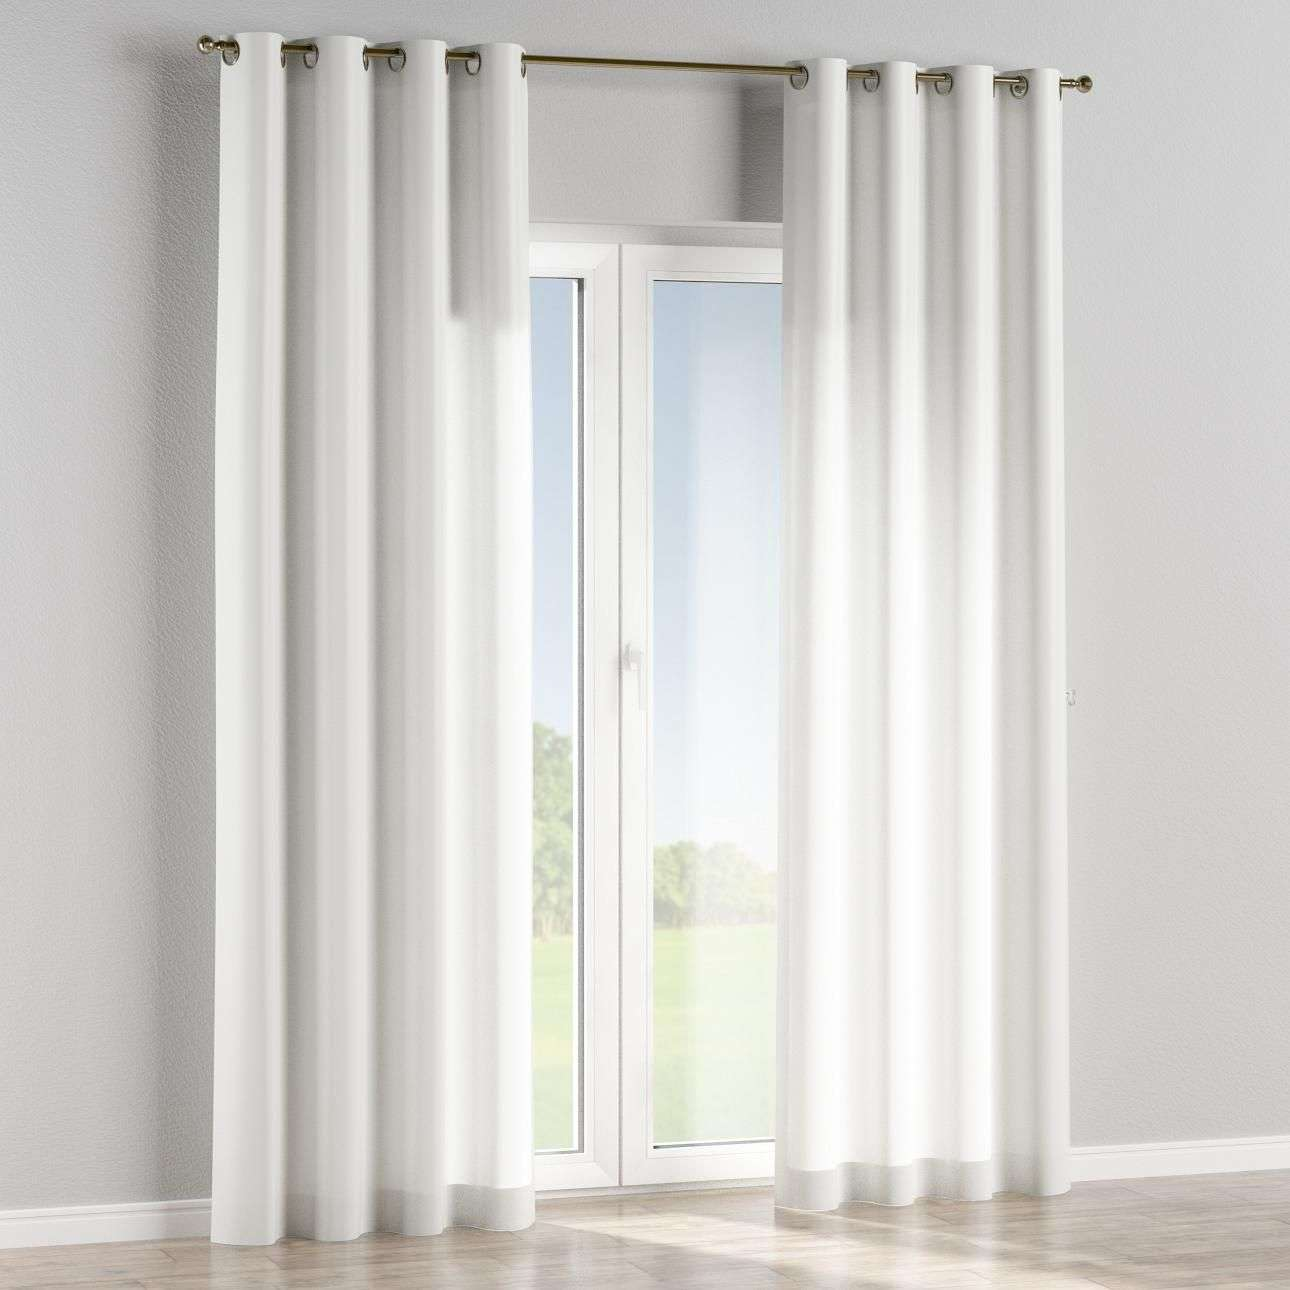 Eyelet curtains in collection Linen , fabric: 392-08